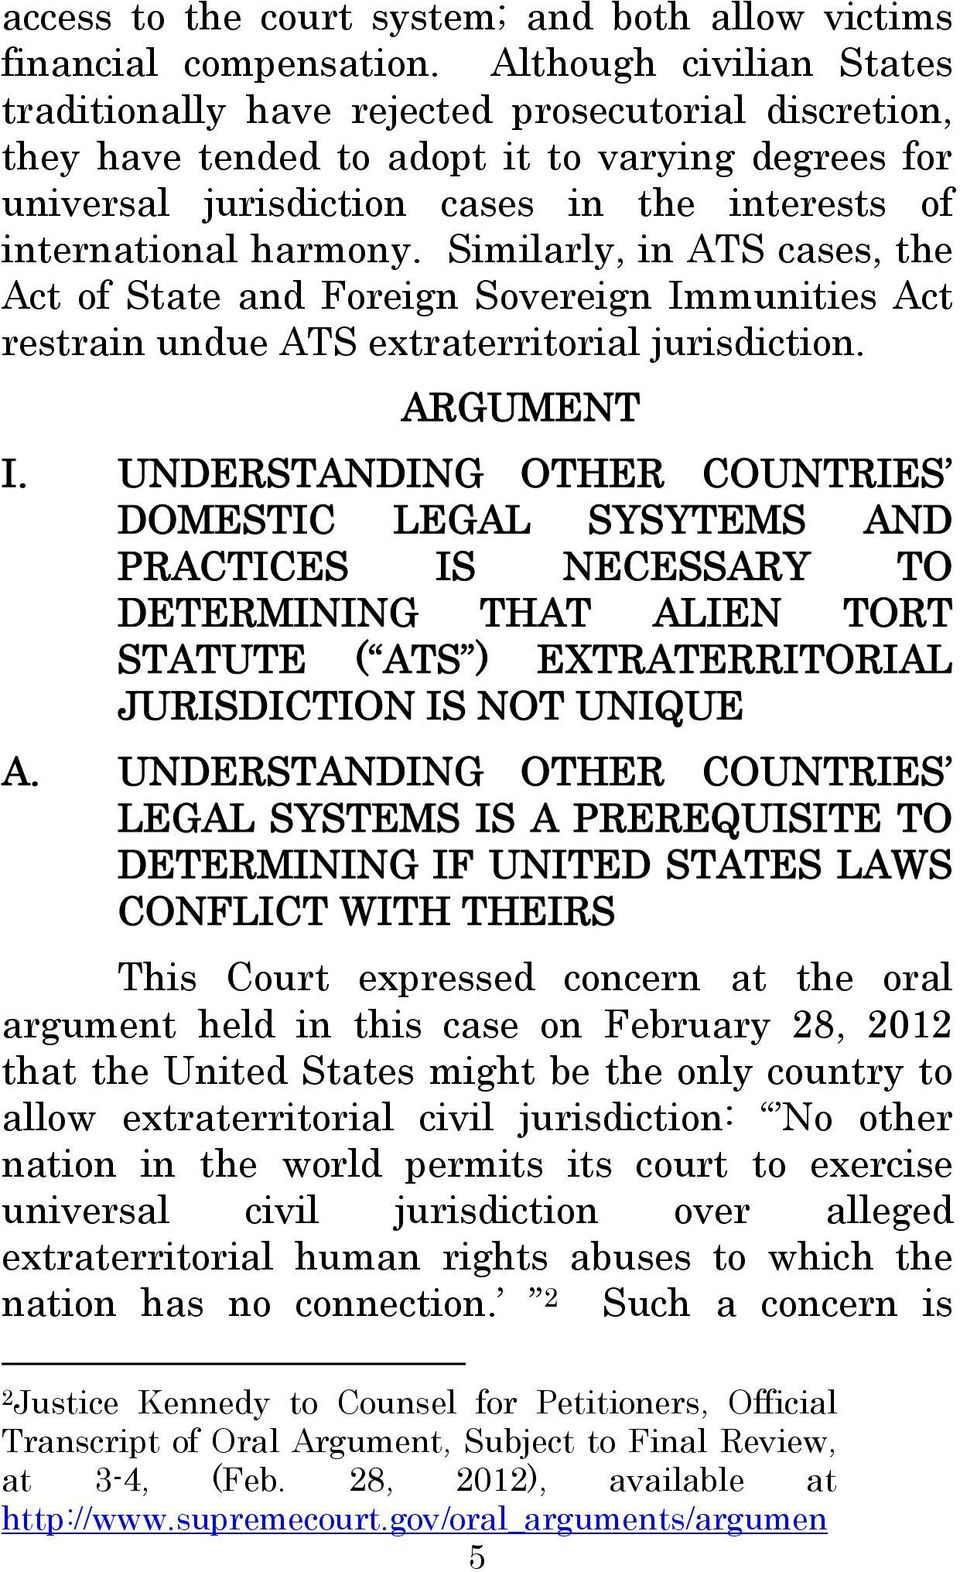 harmony. Similarly, in ATS cases, the Act of State and Foreign Sovereign Immunities Act restrain undue ATS extraterritorial jurisdiction. ARGUMENT I.